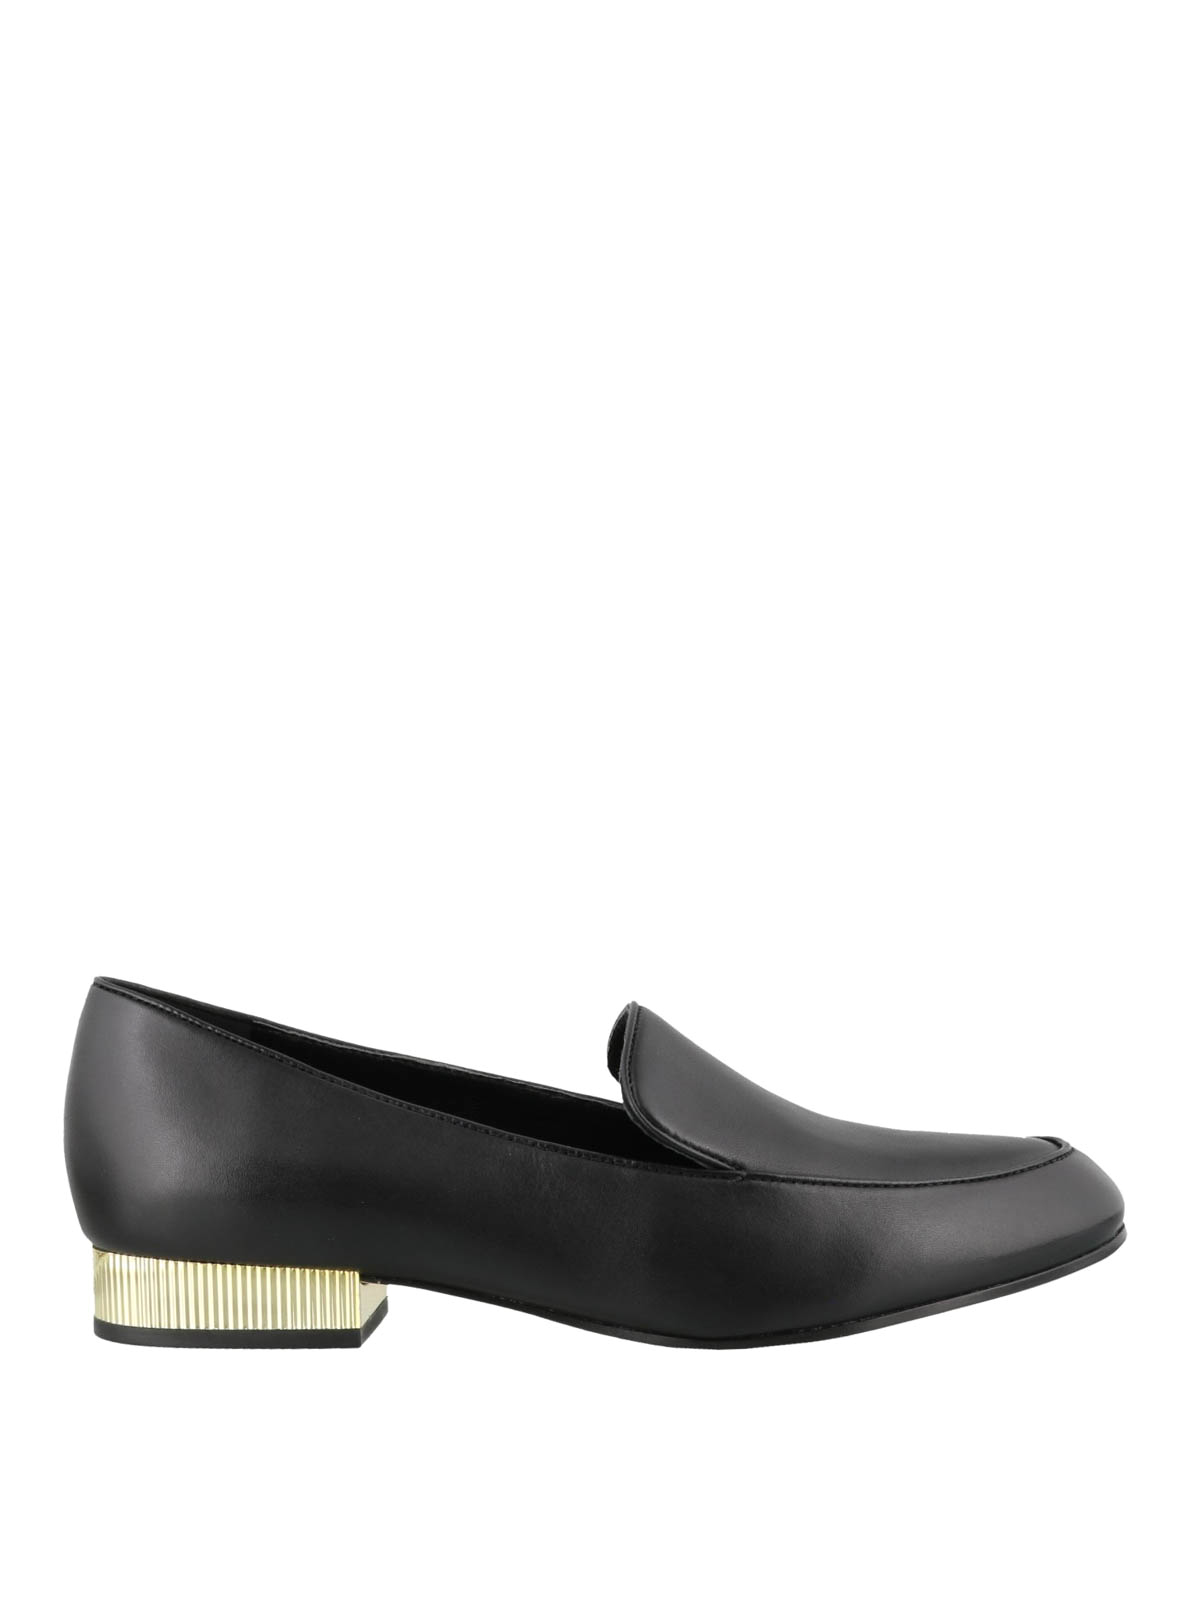 Michael Kors - Valerie leather loafers